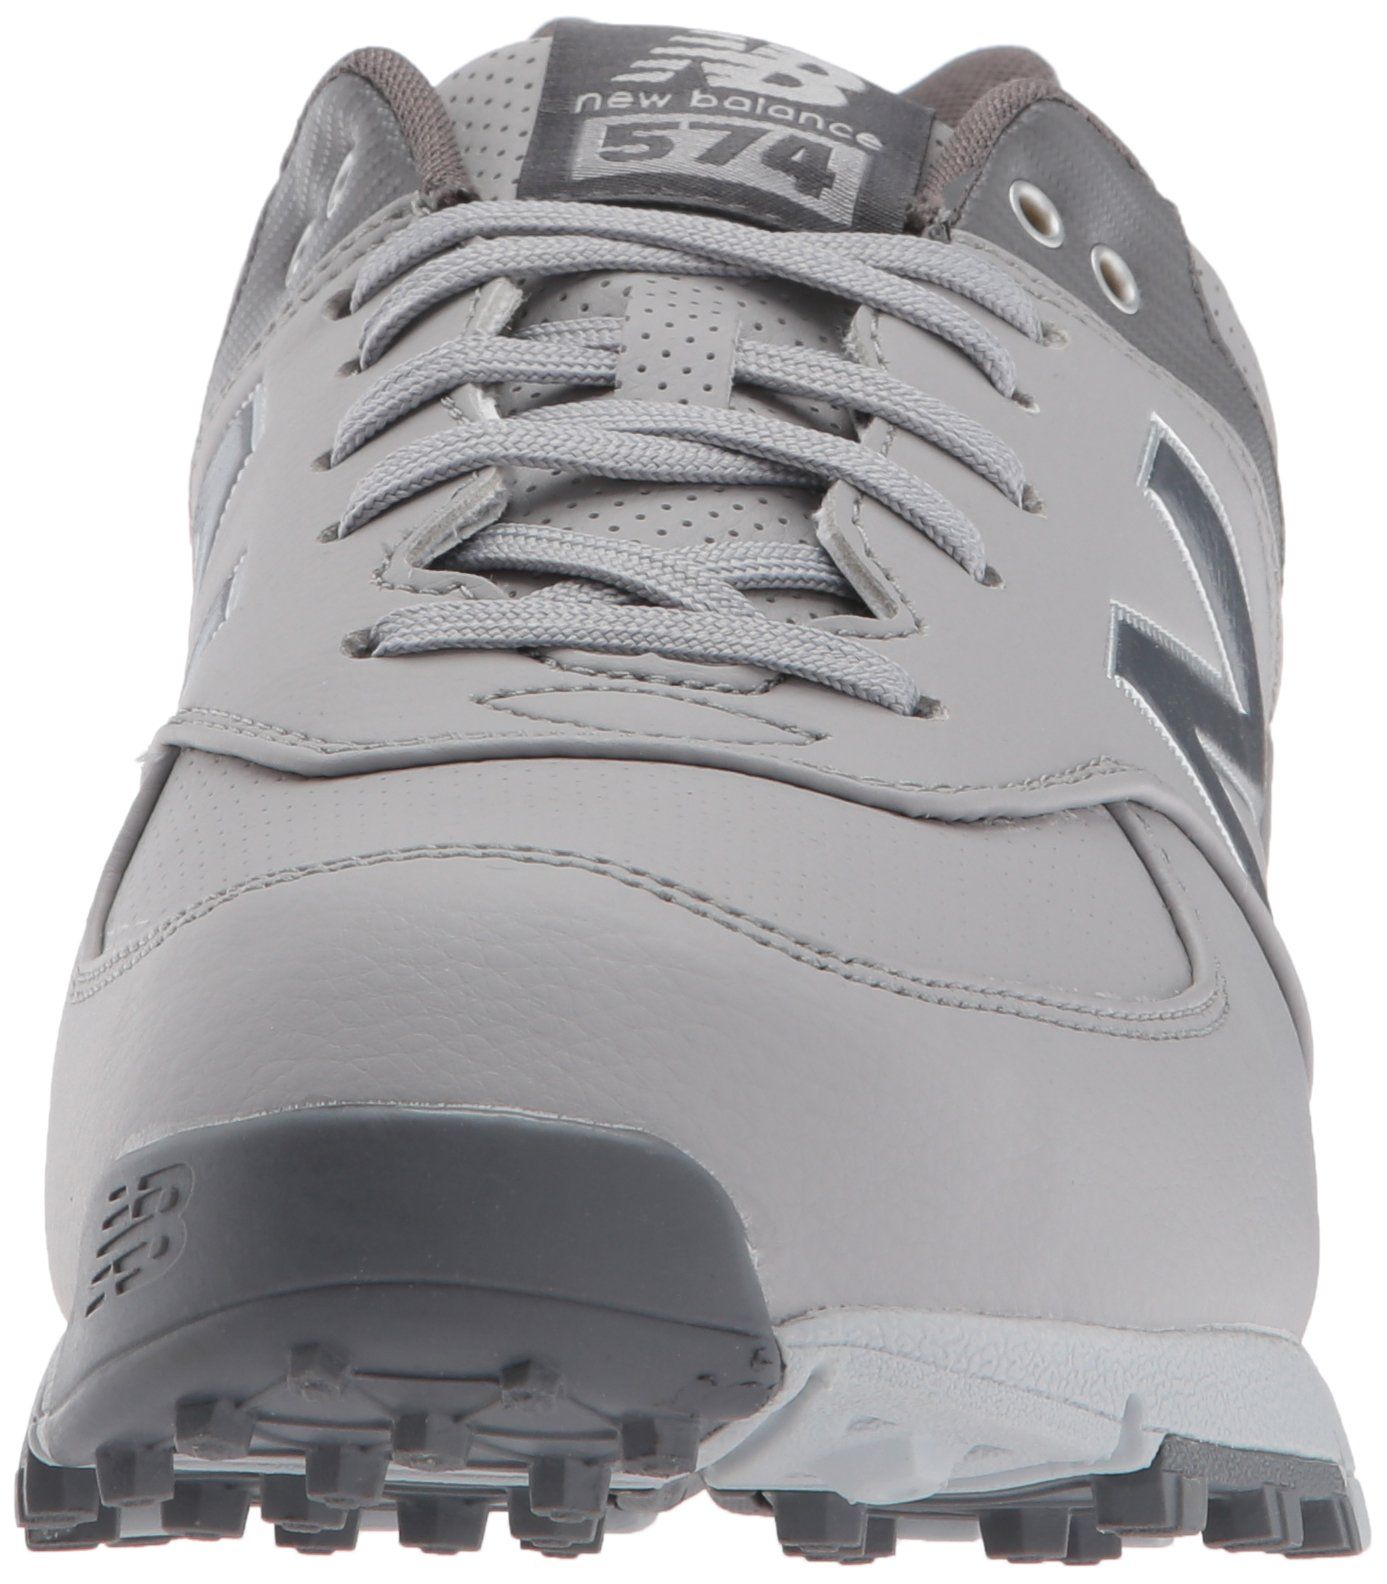 online store 29de6 55583 Golf Shoes Mens     New Balance Mens 574 SL Golf Shoe Grey Silver 10.5 2E  2E US -- Have a look at this wonderful product. (This is an affiliate link).